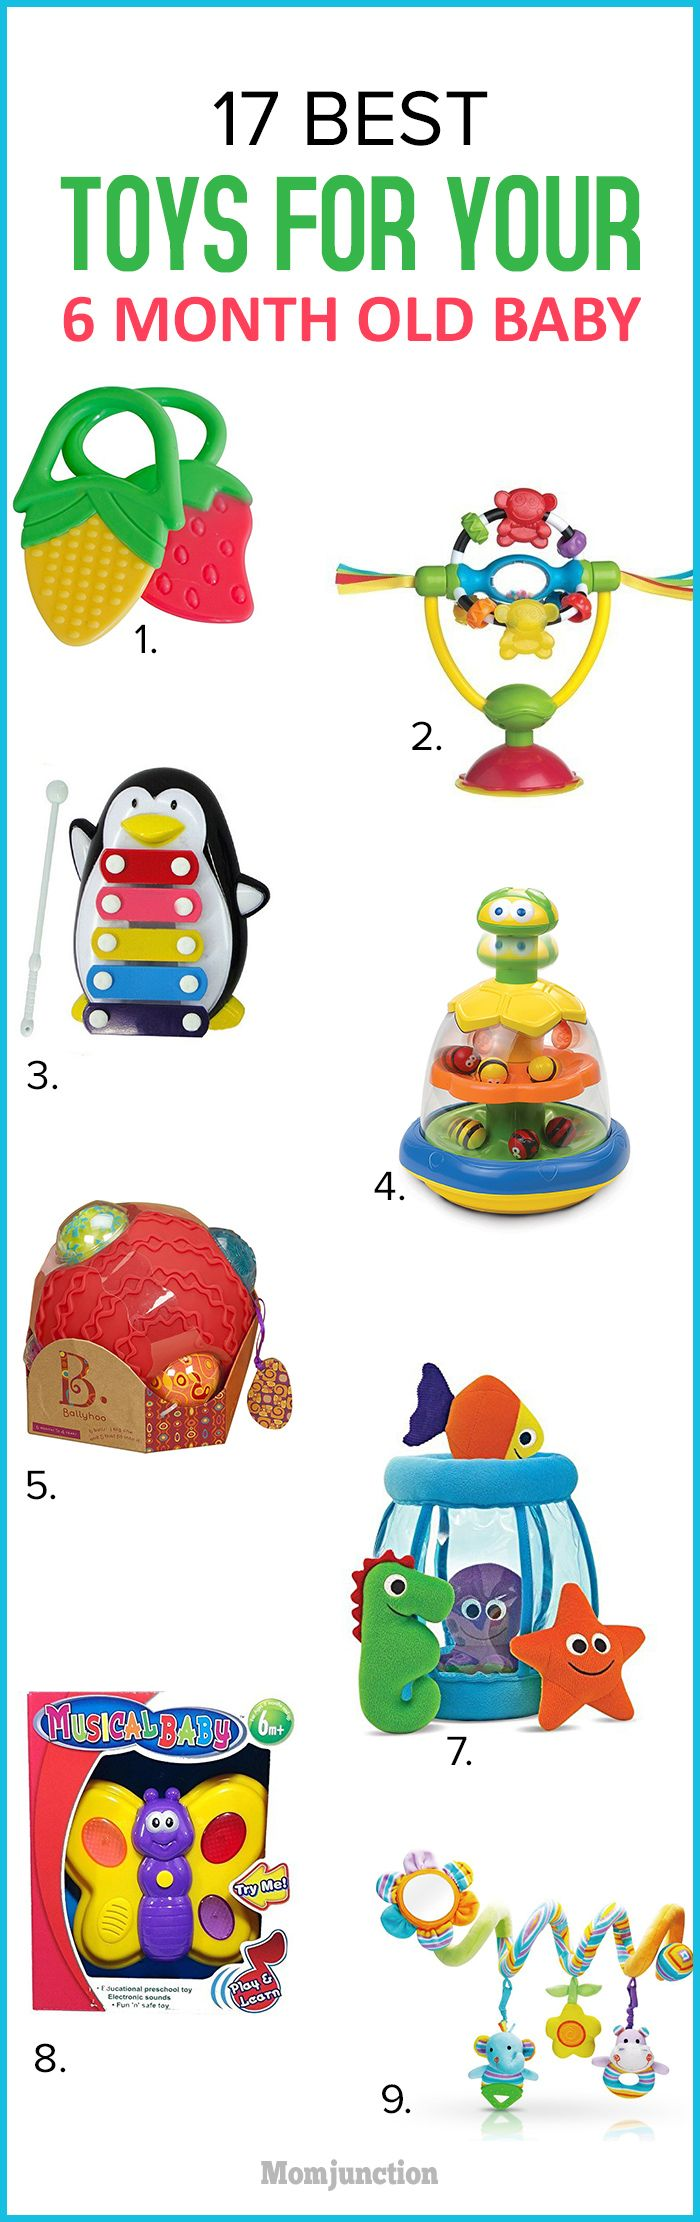 Juguetes Bebes 7 Meses 17 Best Toys For Your 6 Month Old Baby Juguetes Para Bebe Bebe